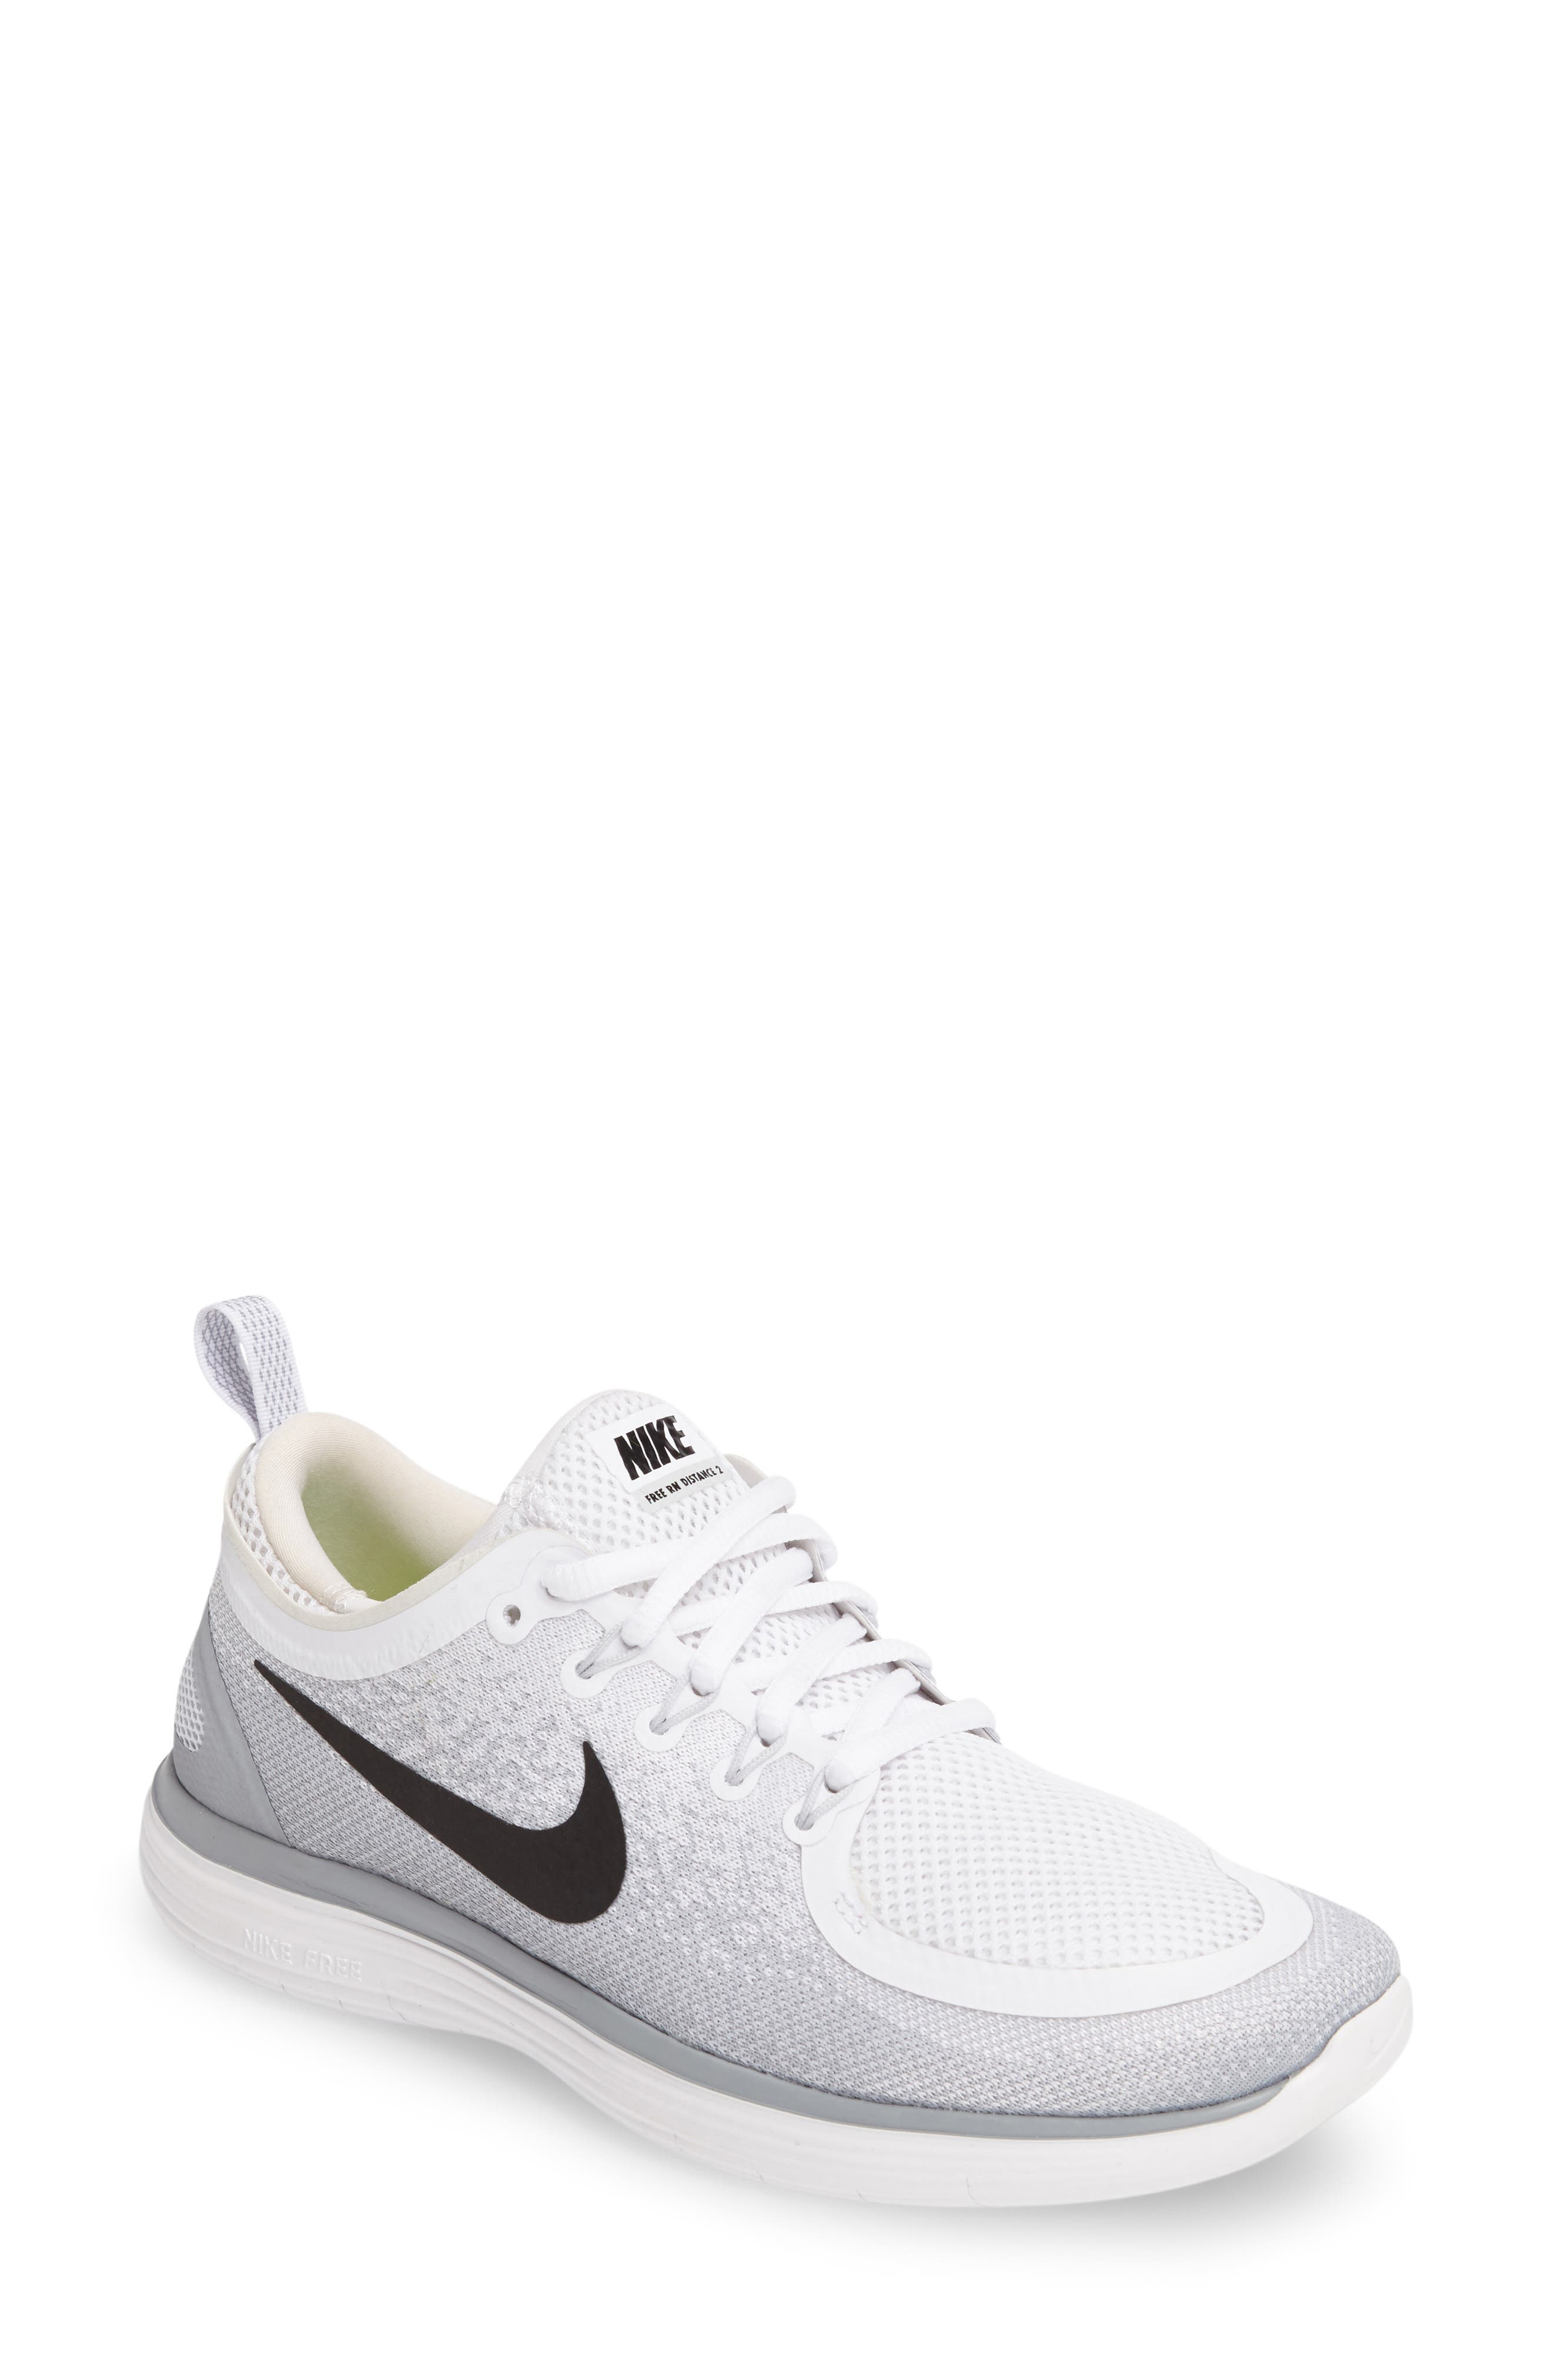 hot sale online 4e18c ebe78 nike free 5.0 tr fit 5 negro mettodasic